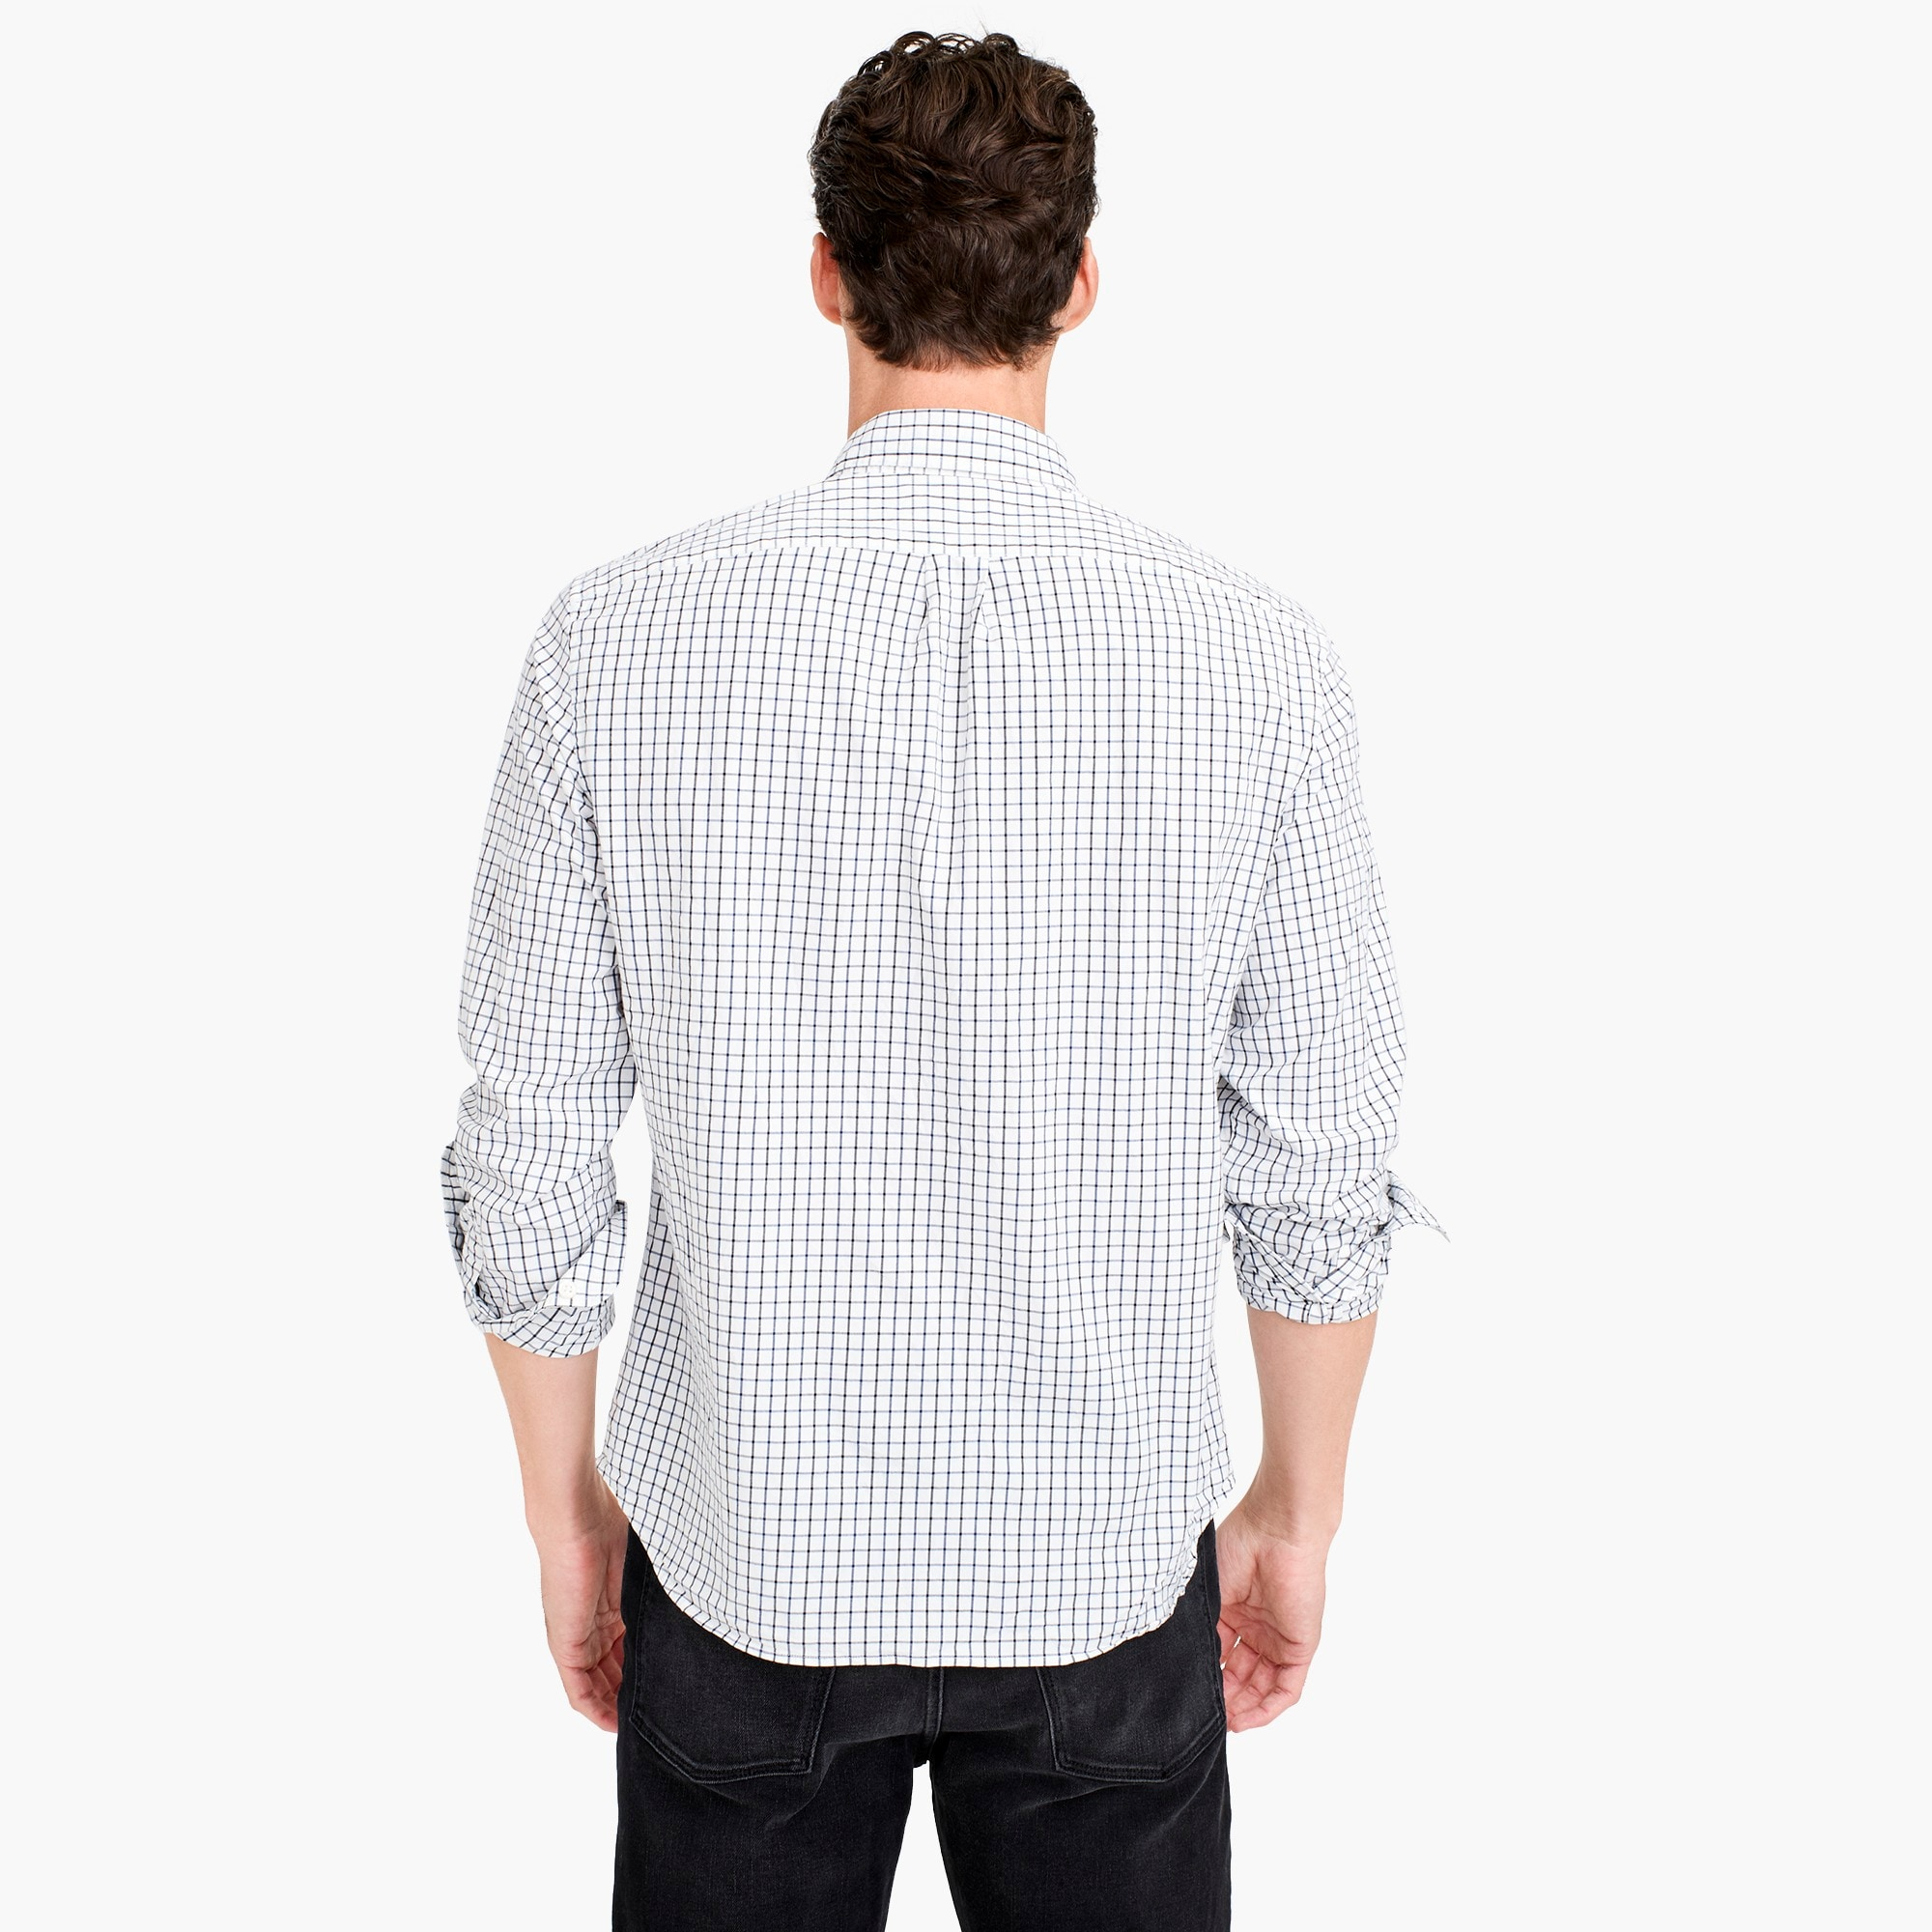 Image 5 for Slim stretch Secret Wash shirt in tattersall